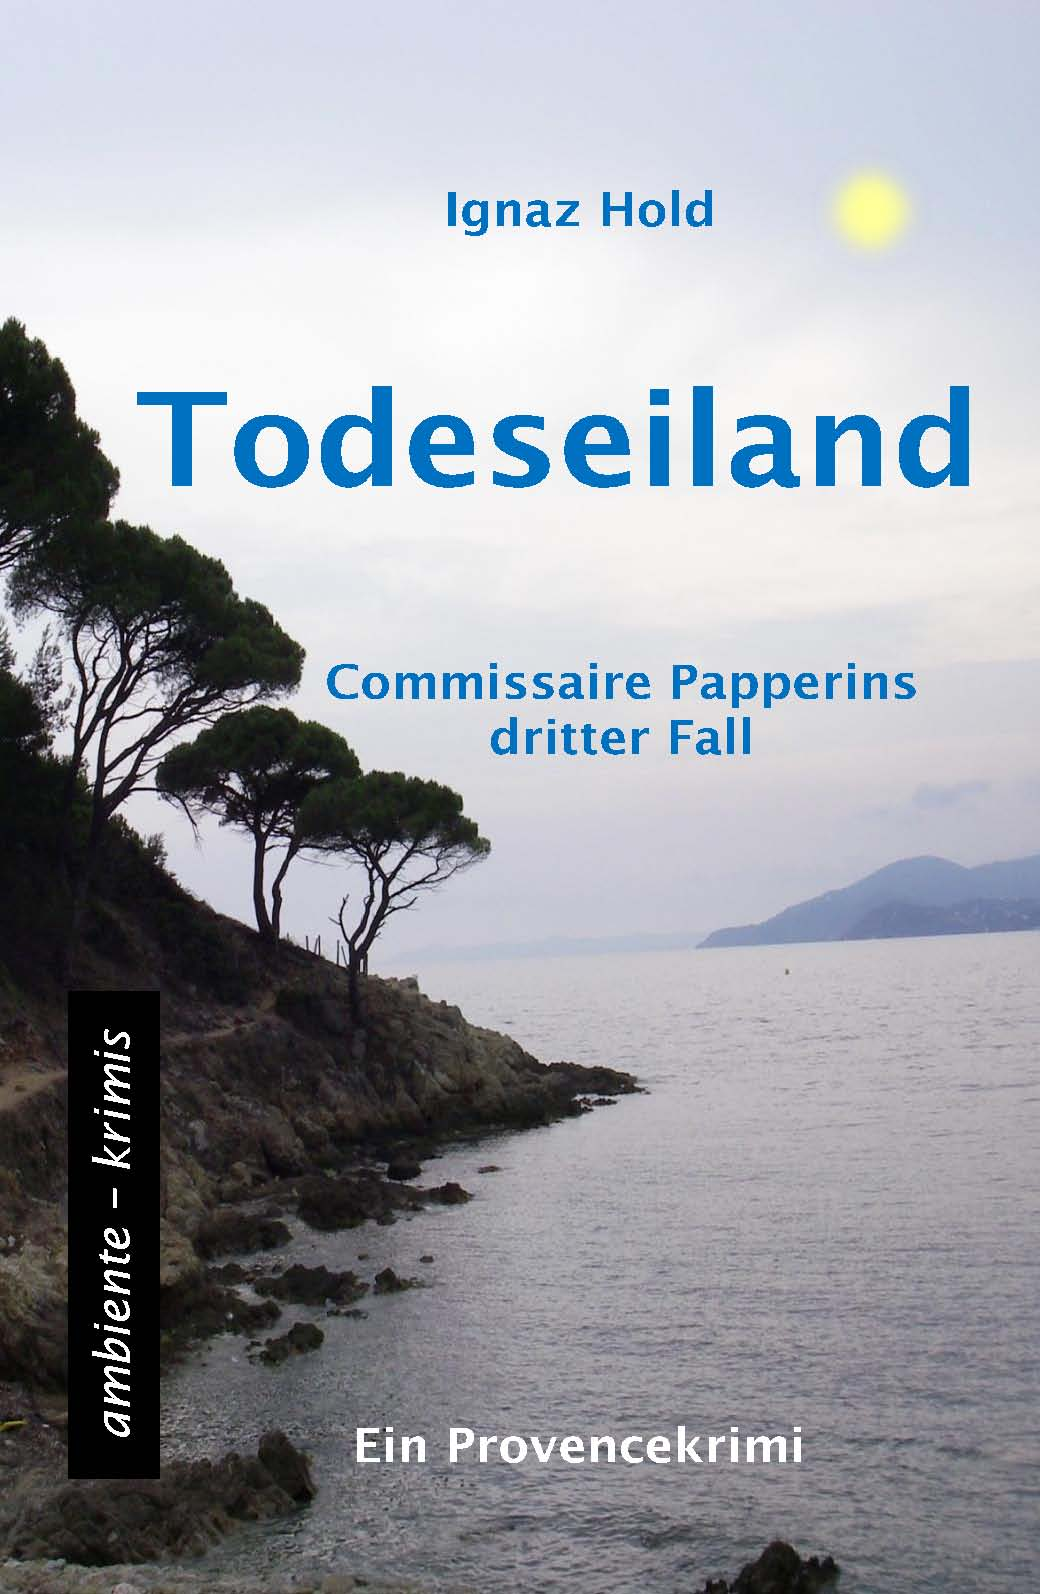 Todeseiland: Commissaire Papperins dritter Fall - ein Provencekrimi - Ignaz Hold